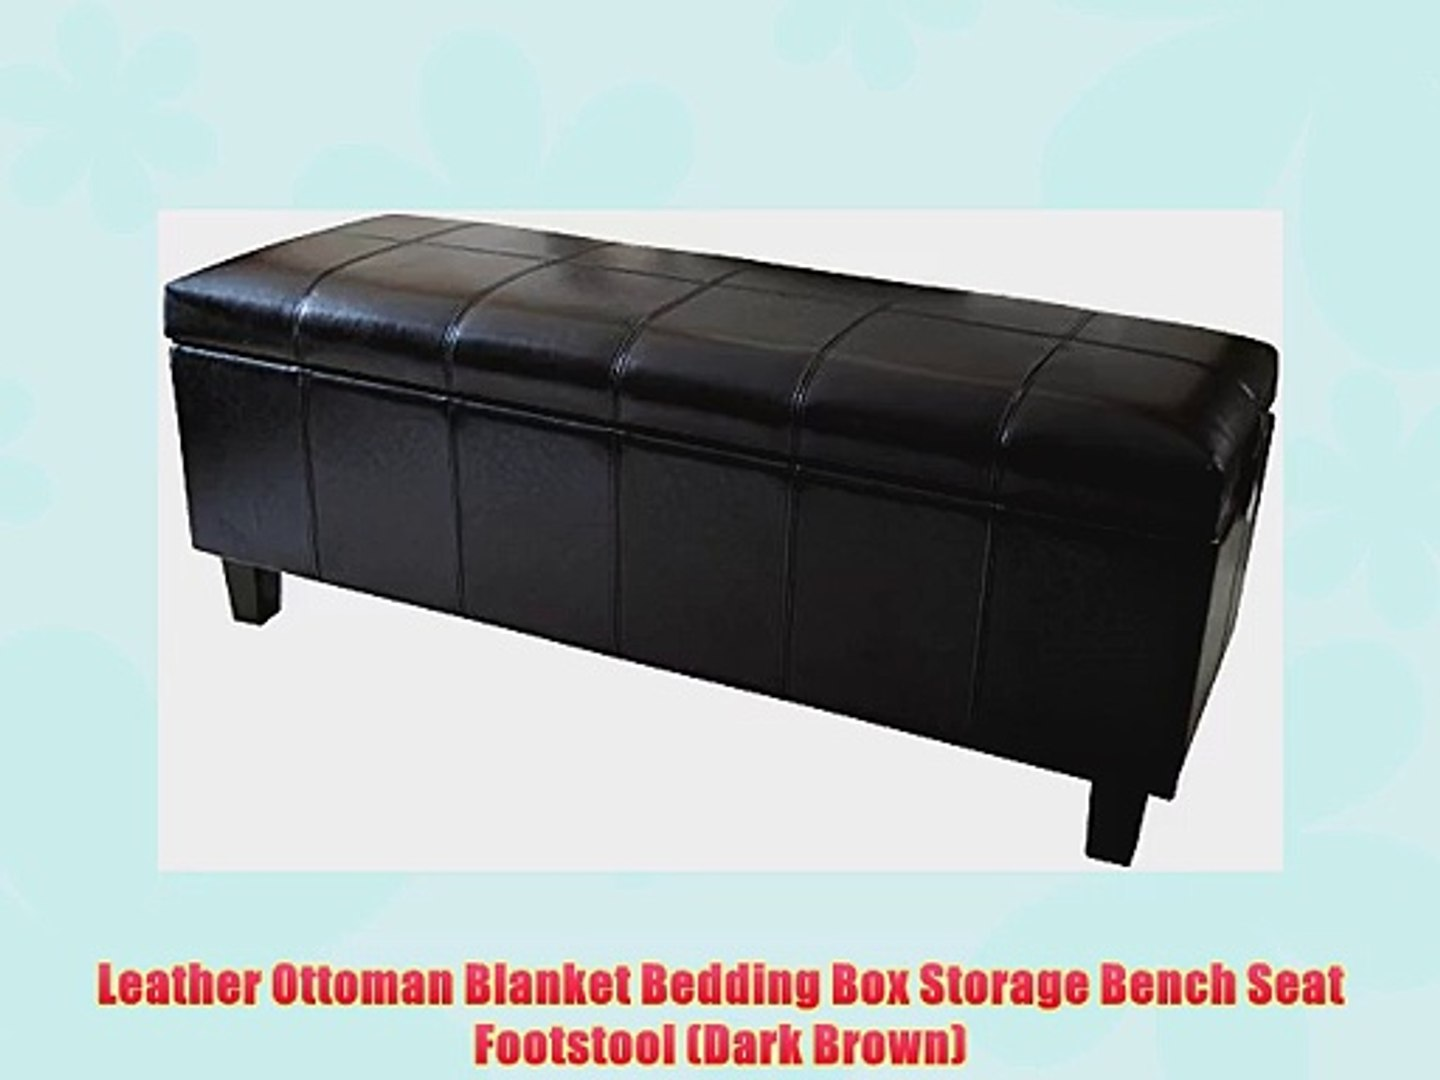 Super Leather Ottoman Blanket Bedding Box Storage Bench Seat Footstool Dark Brown Ncnpc Chair Design For Home Ncnpcorg